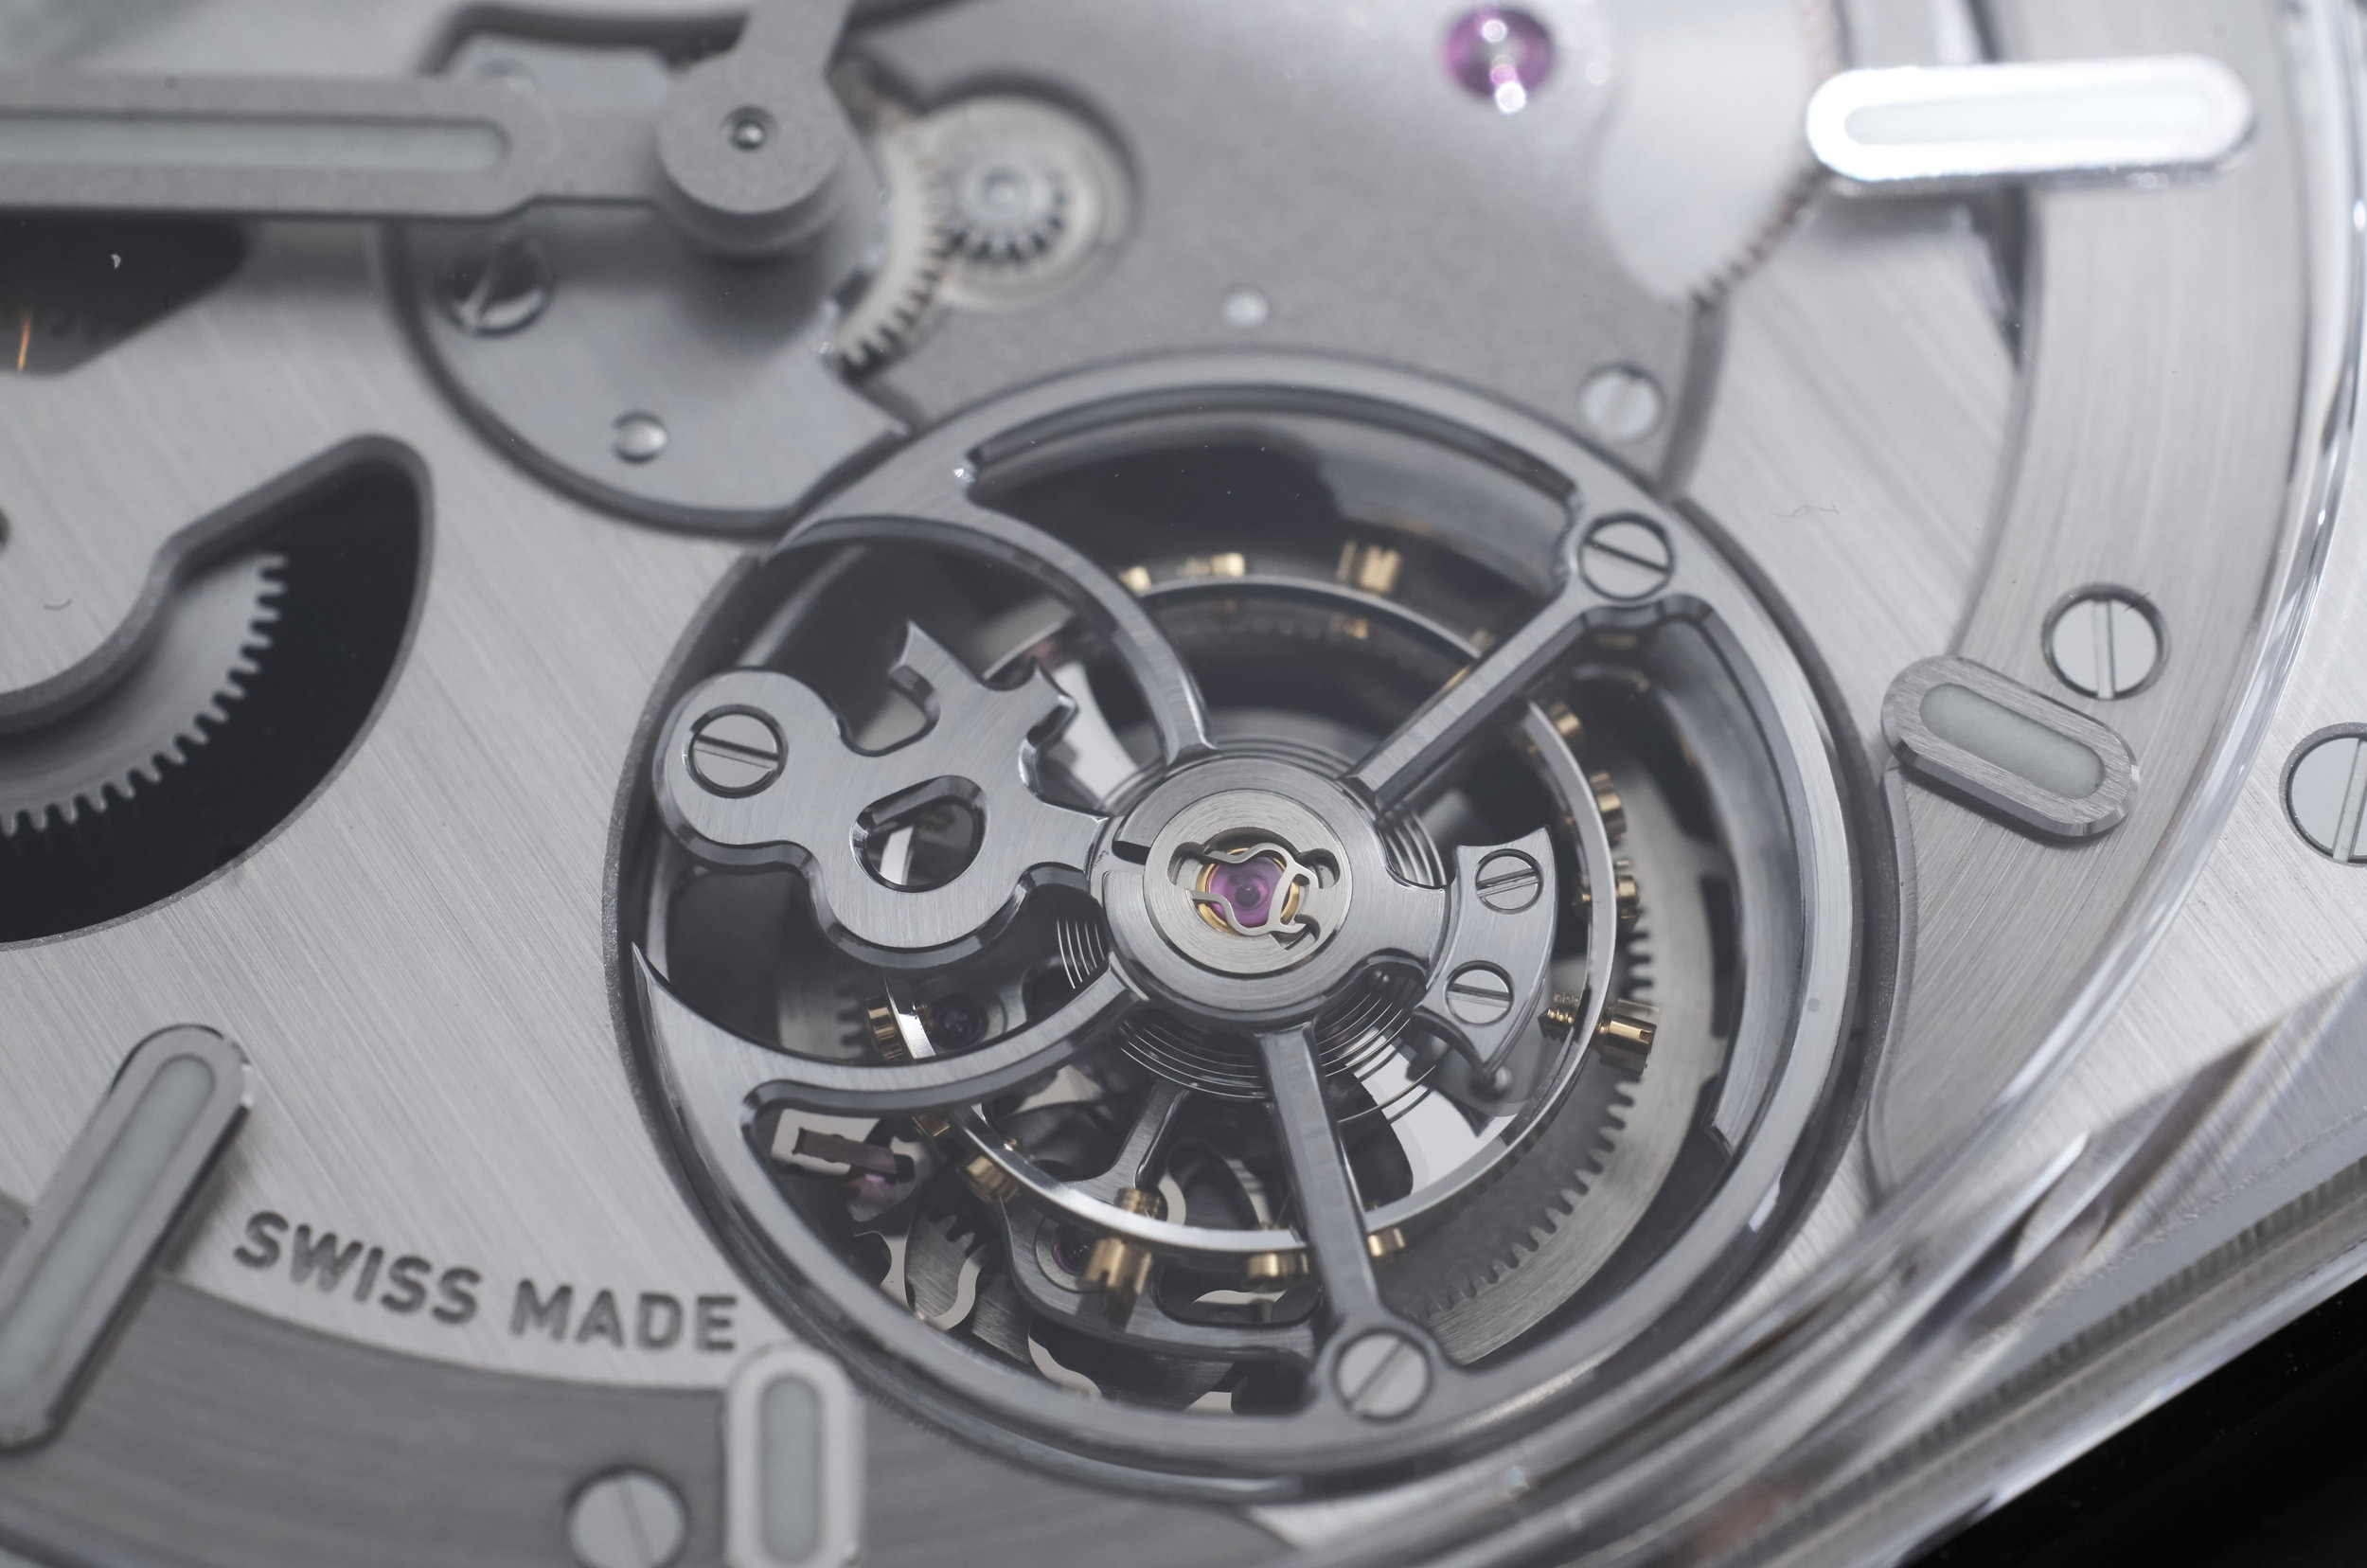 Bell & Ross Tourbillon cage detail